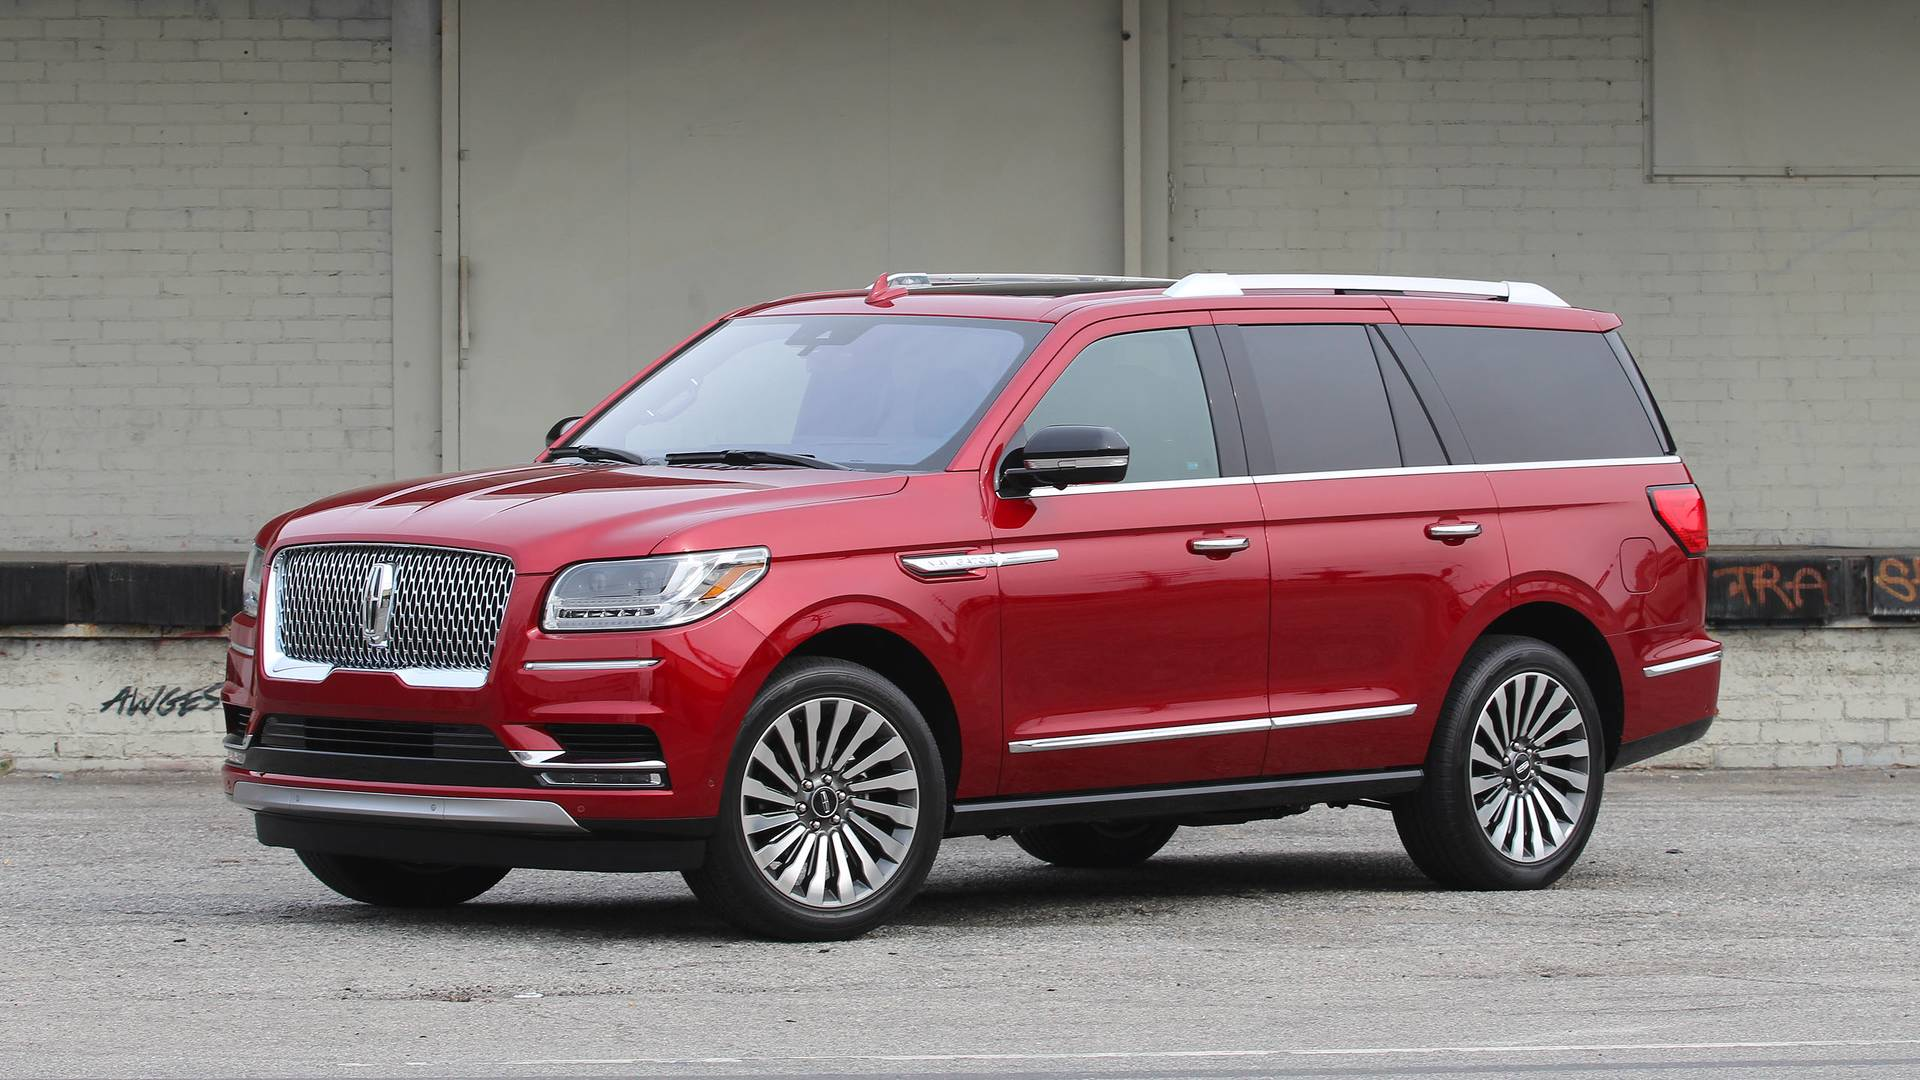 https://icdn-2.motor1.com/images/mgl/1OOVM/s1/2018-lincoln-navigator-first-drive.jpg